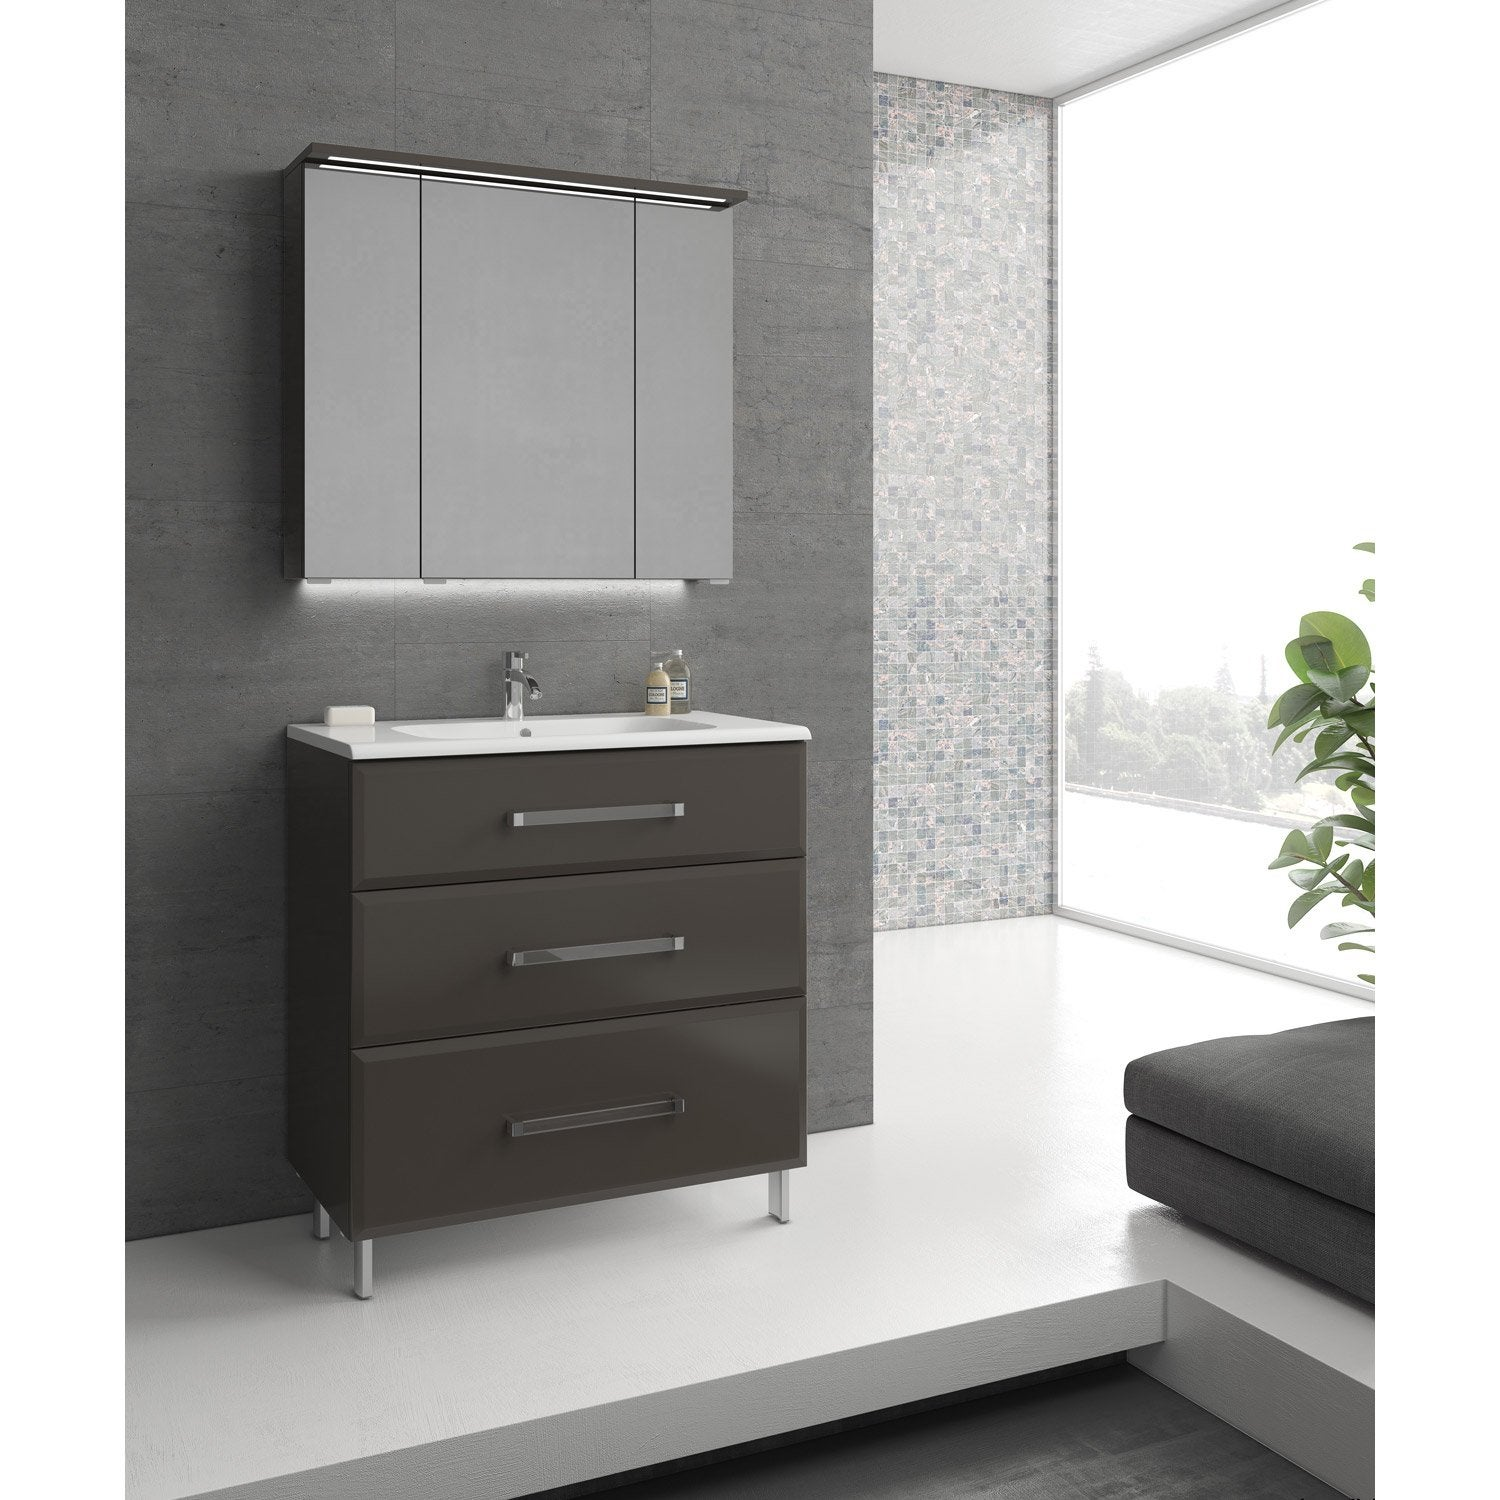 deco salle de bain gris et aubergine. Black Bedroom Furniture Sets. Home Design Ideas